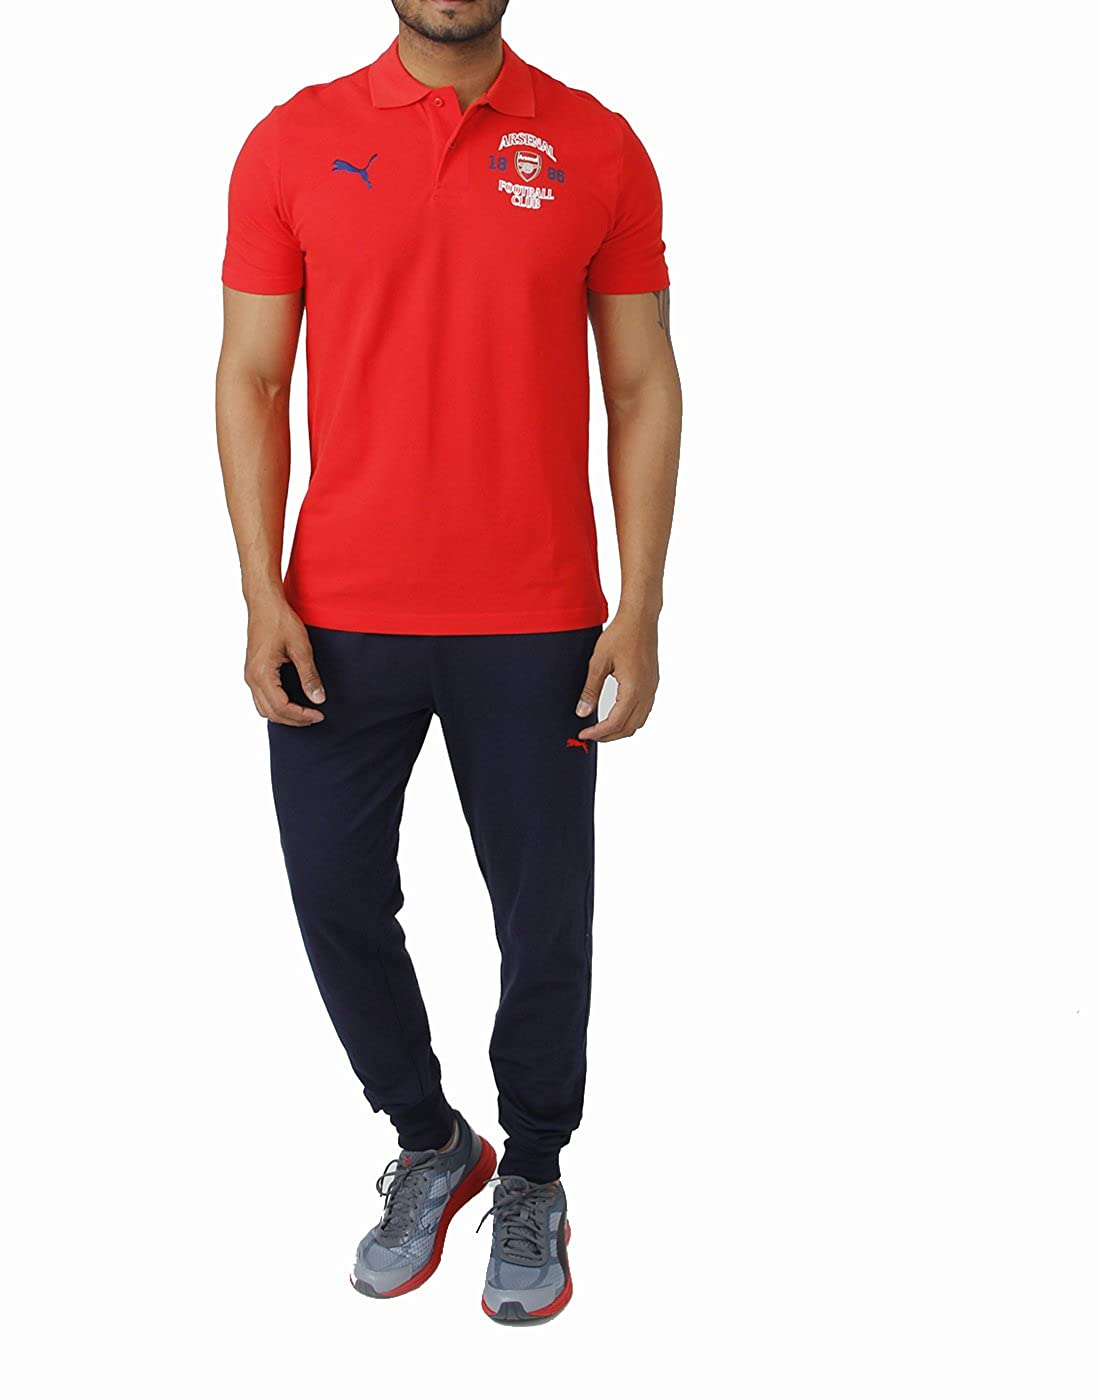 2014-2015 Arsenal Puma Fan Polo Shirt (Red): Amazon.es: Ropa y ...